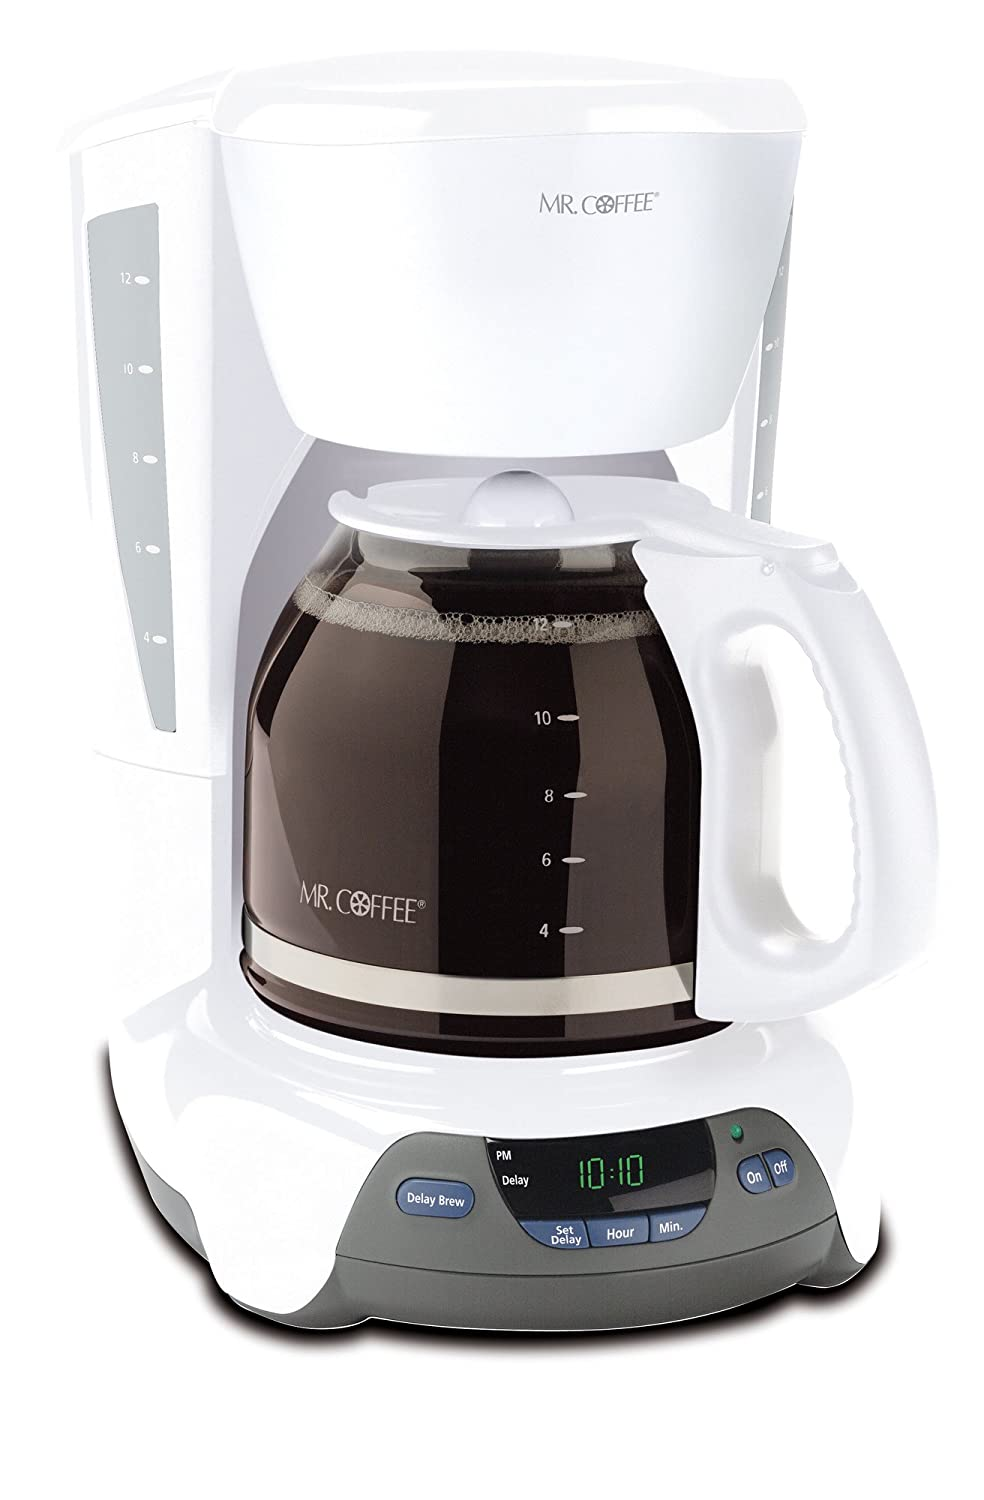 Mr. Coffee VBX23 12-Cup Programmable Coffeemaker, Black Correct SKU